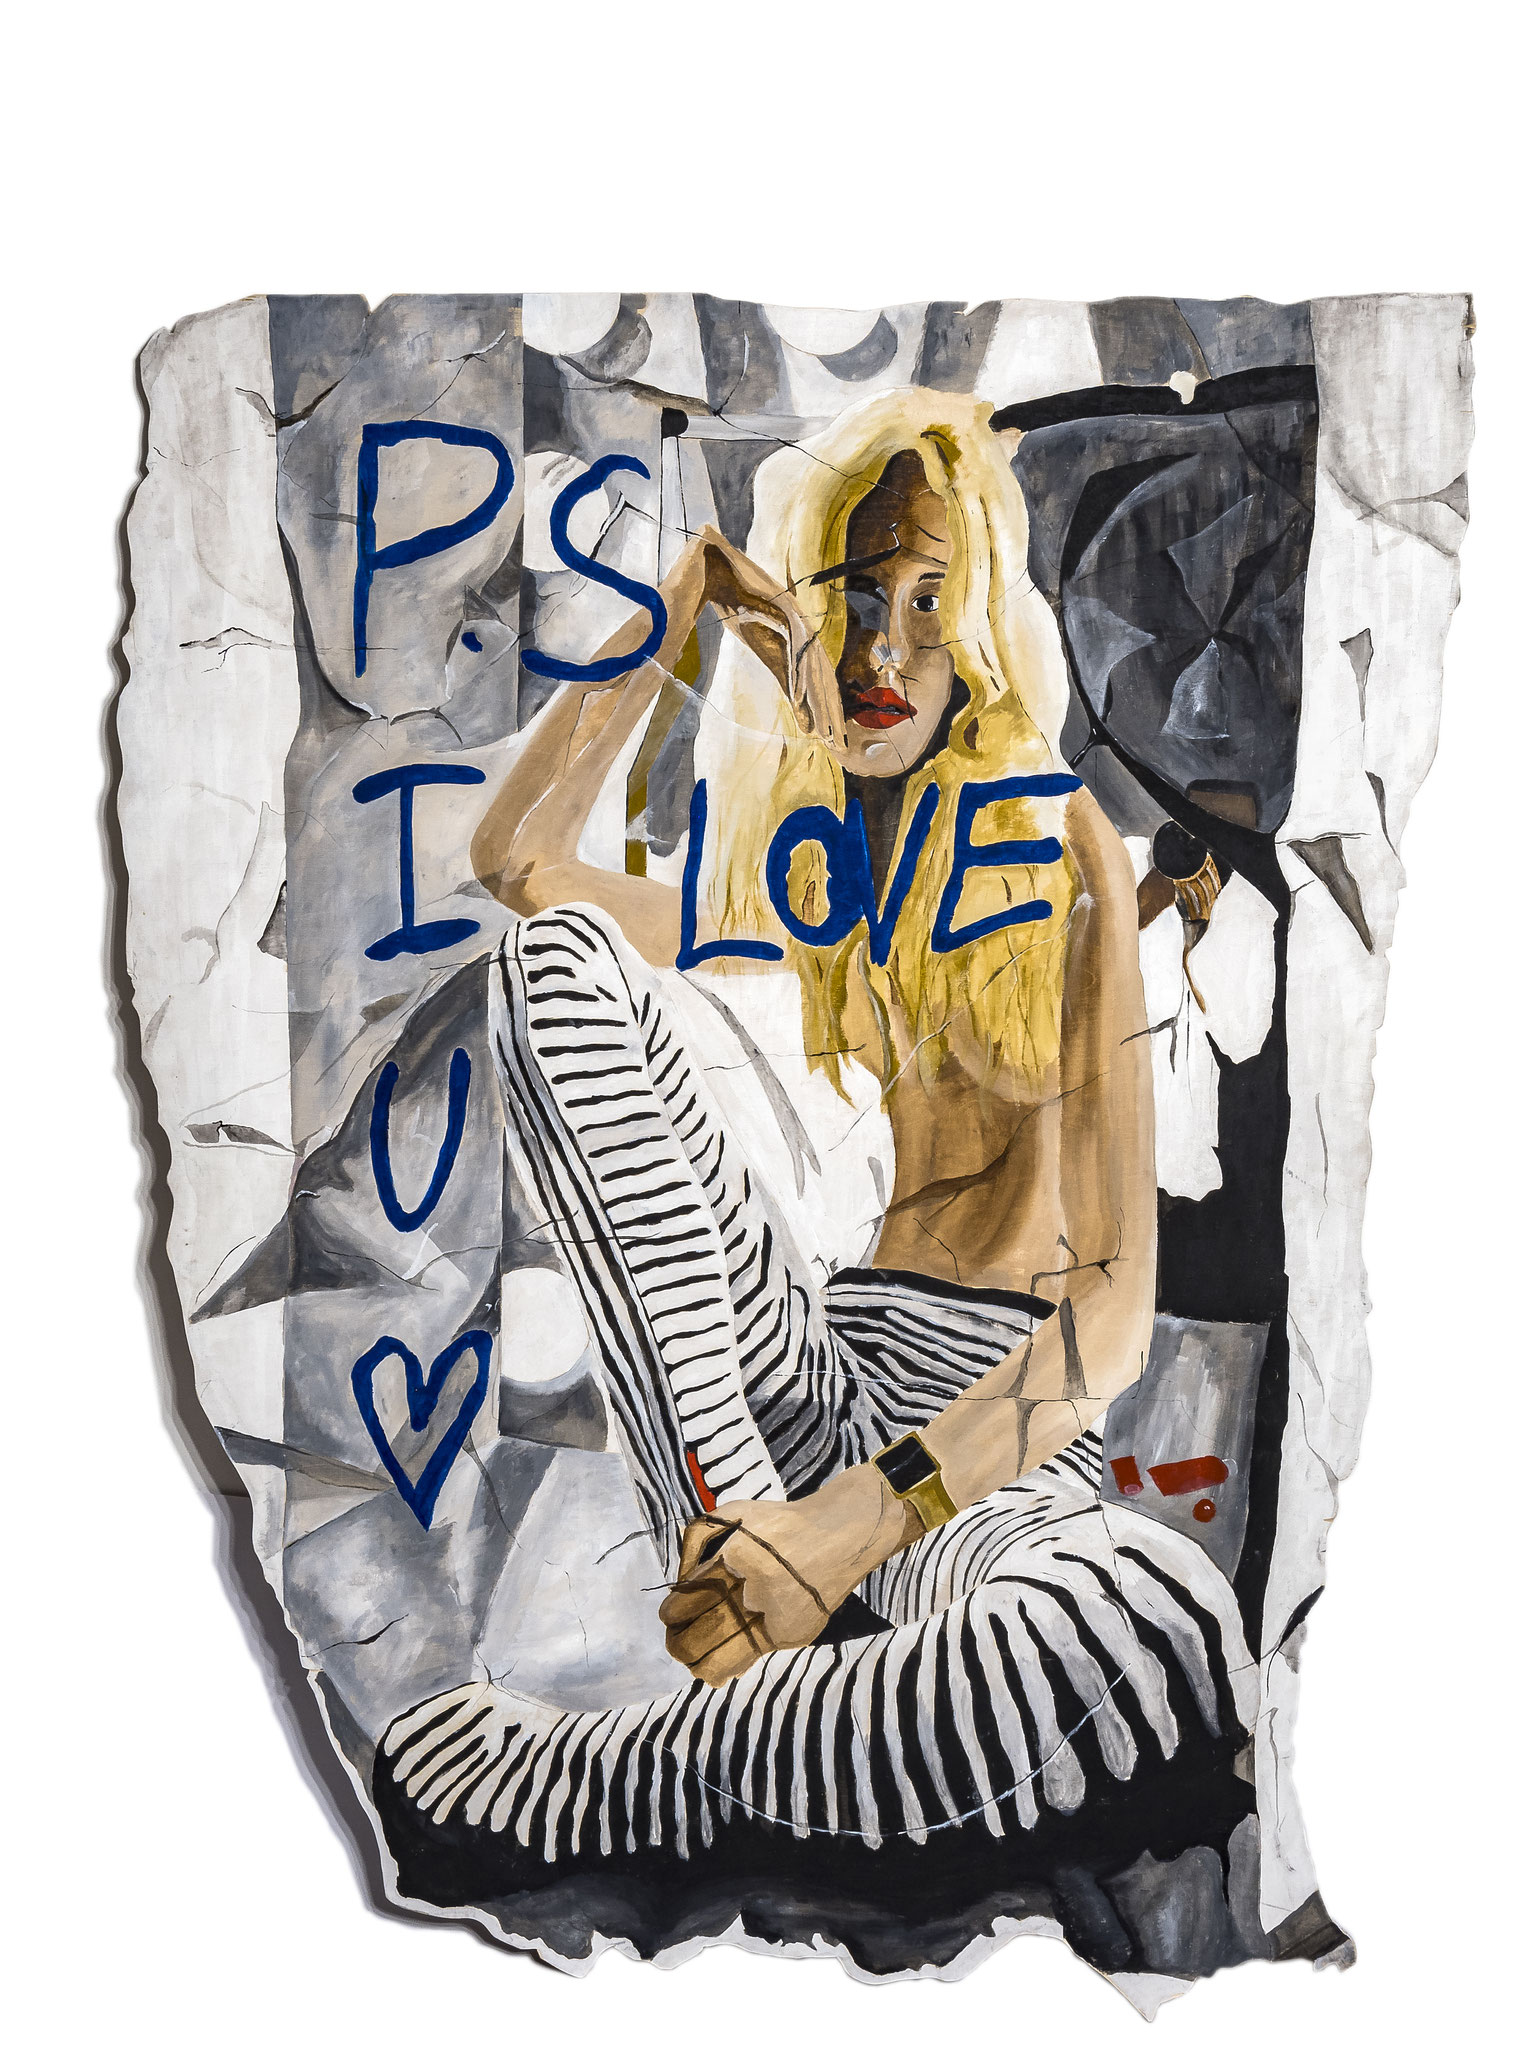 PS I Love You - 2019 - 160cm x 110cm - SOLD